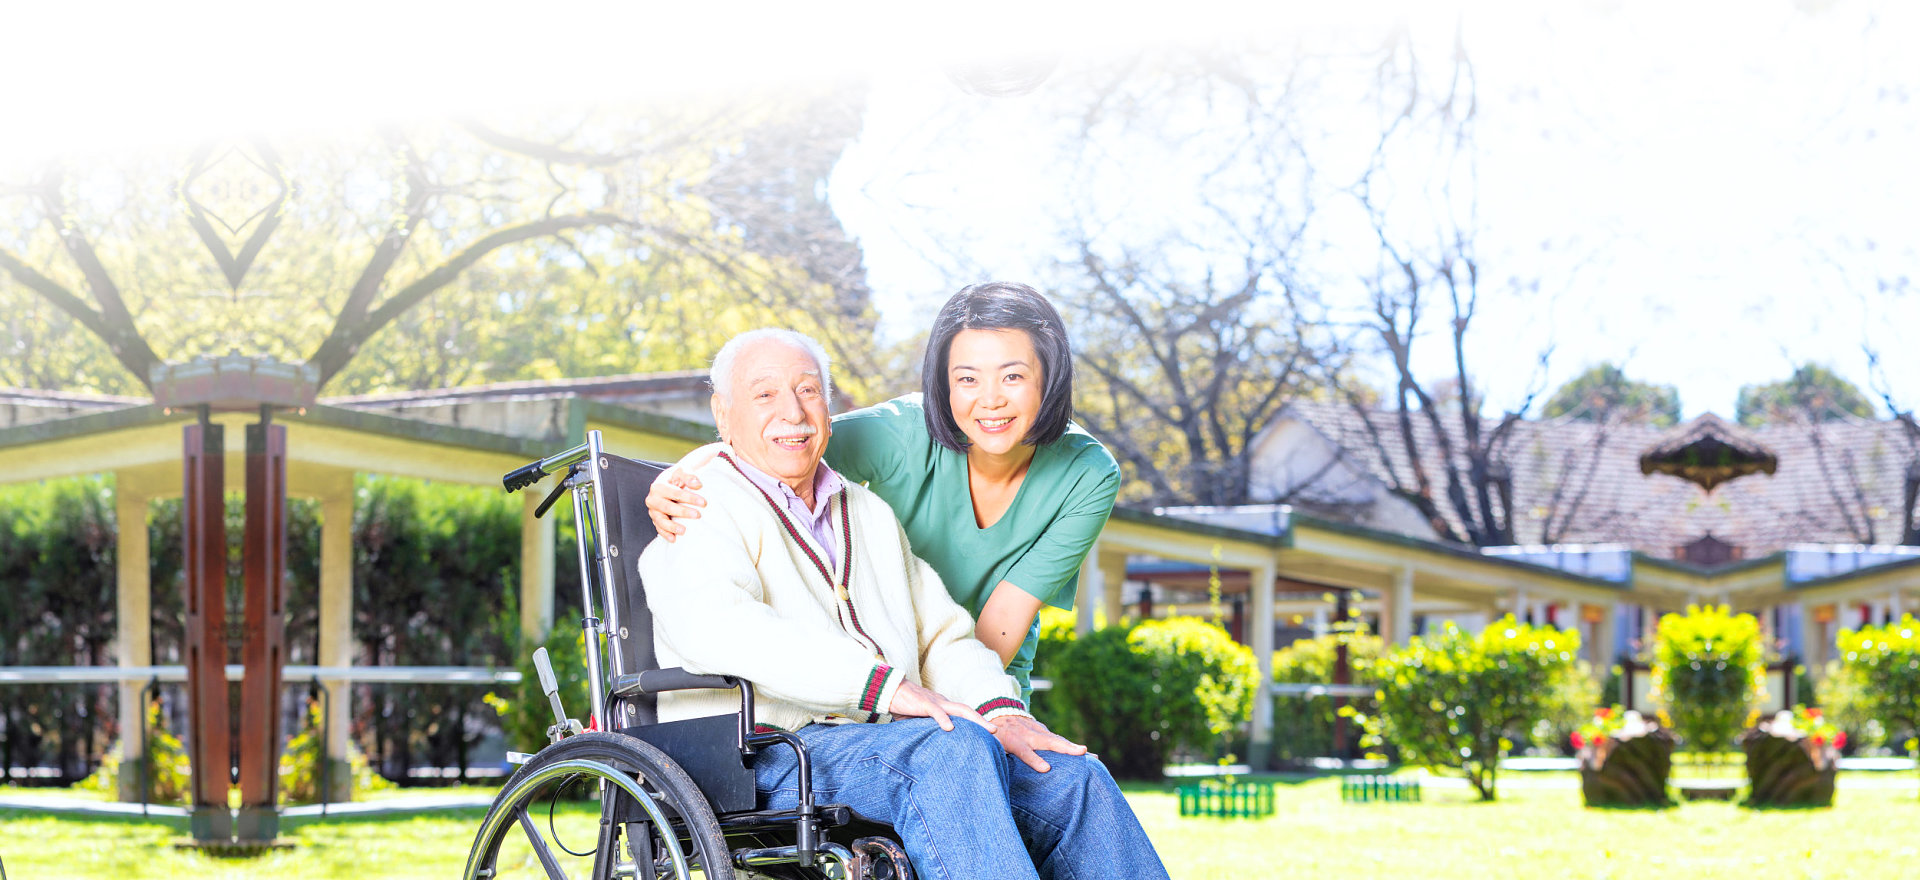 caregiver and her patient in wheelchair looking at camera while smiling